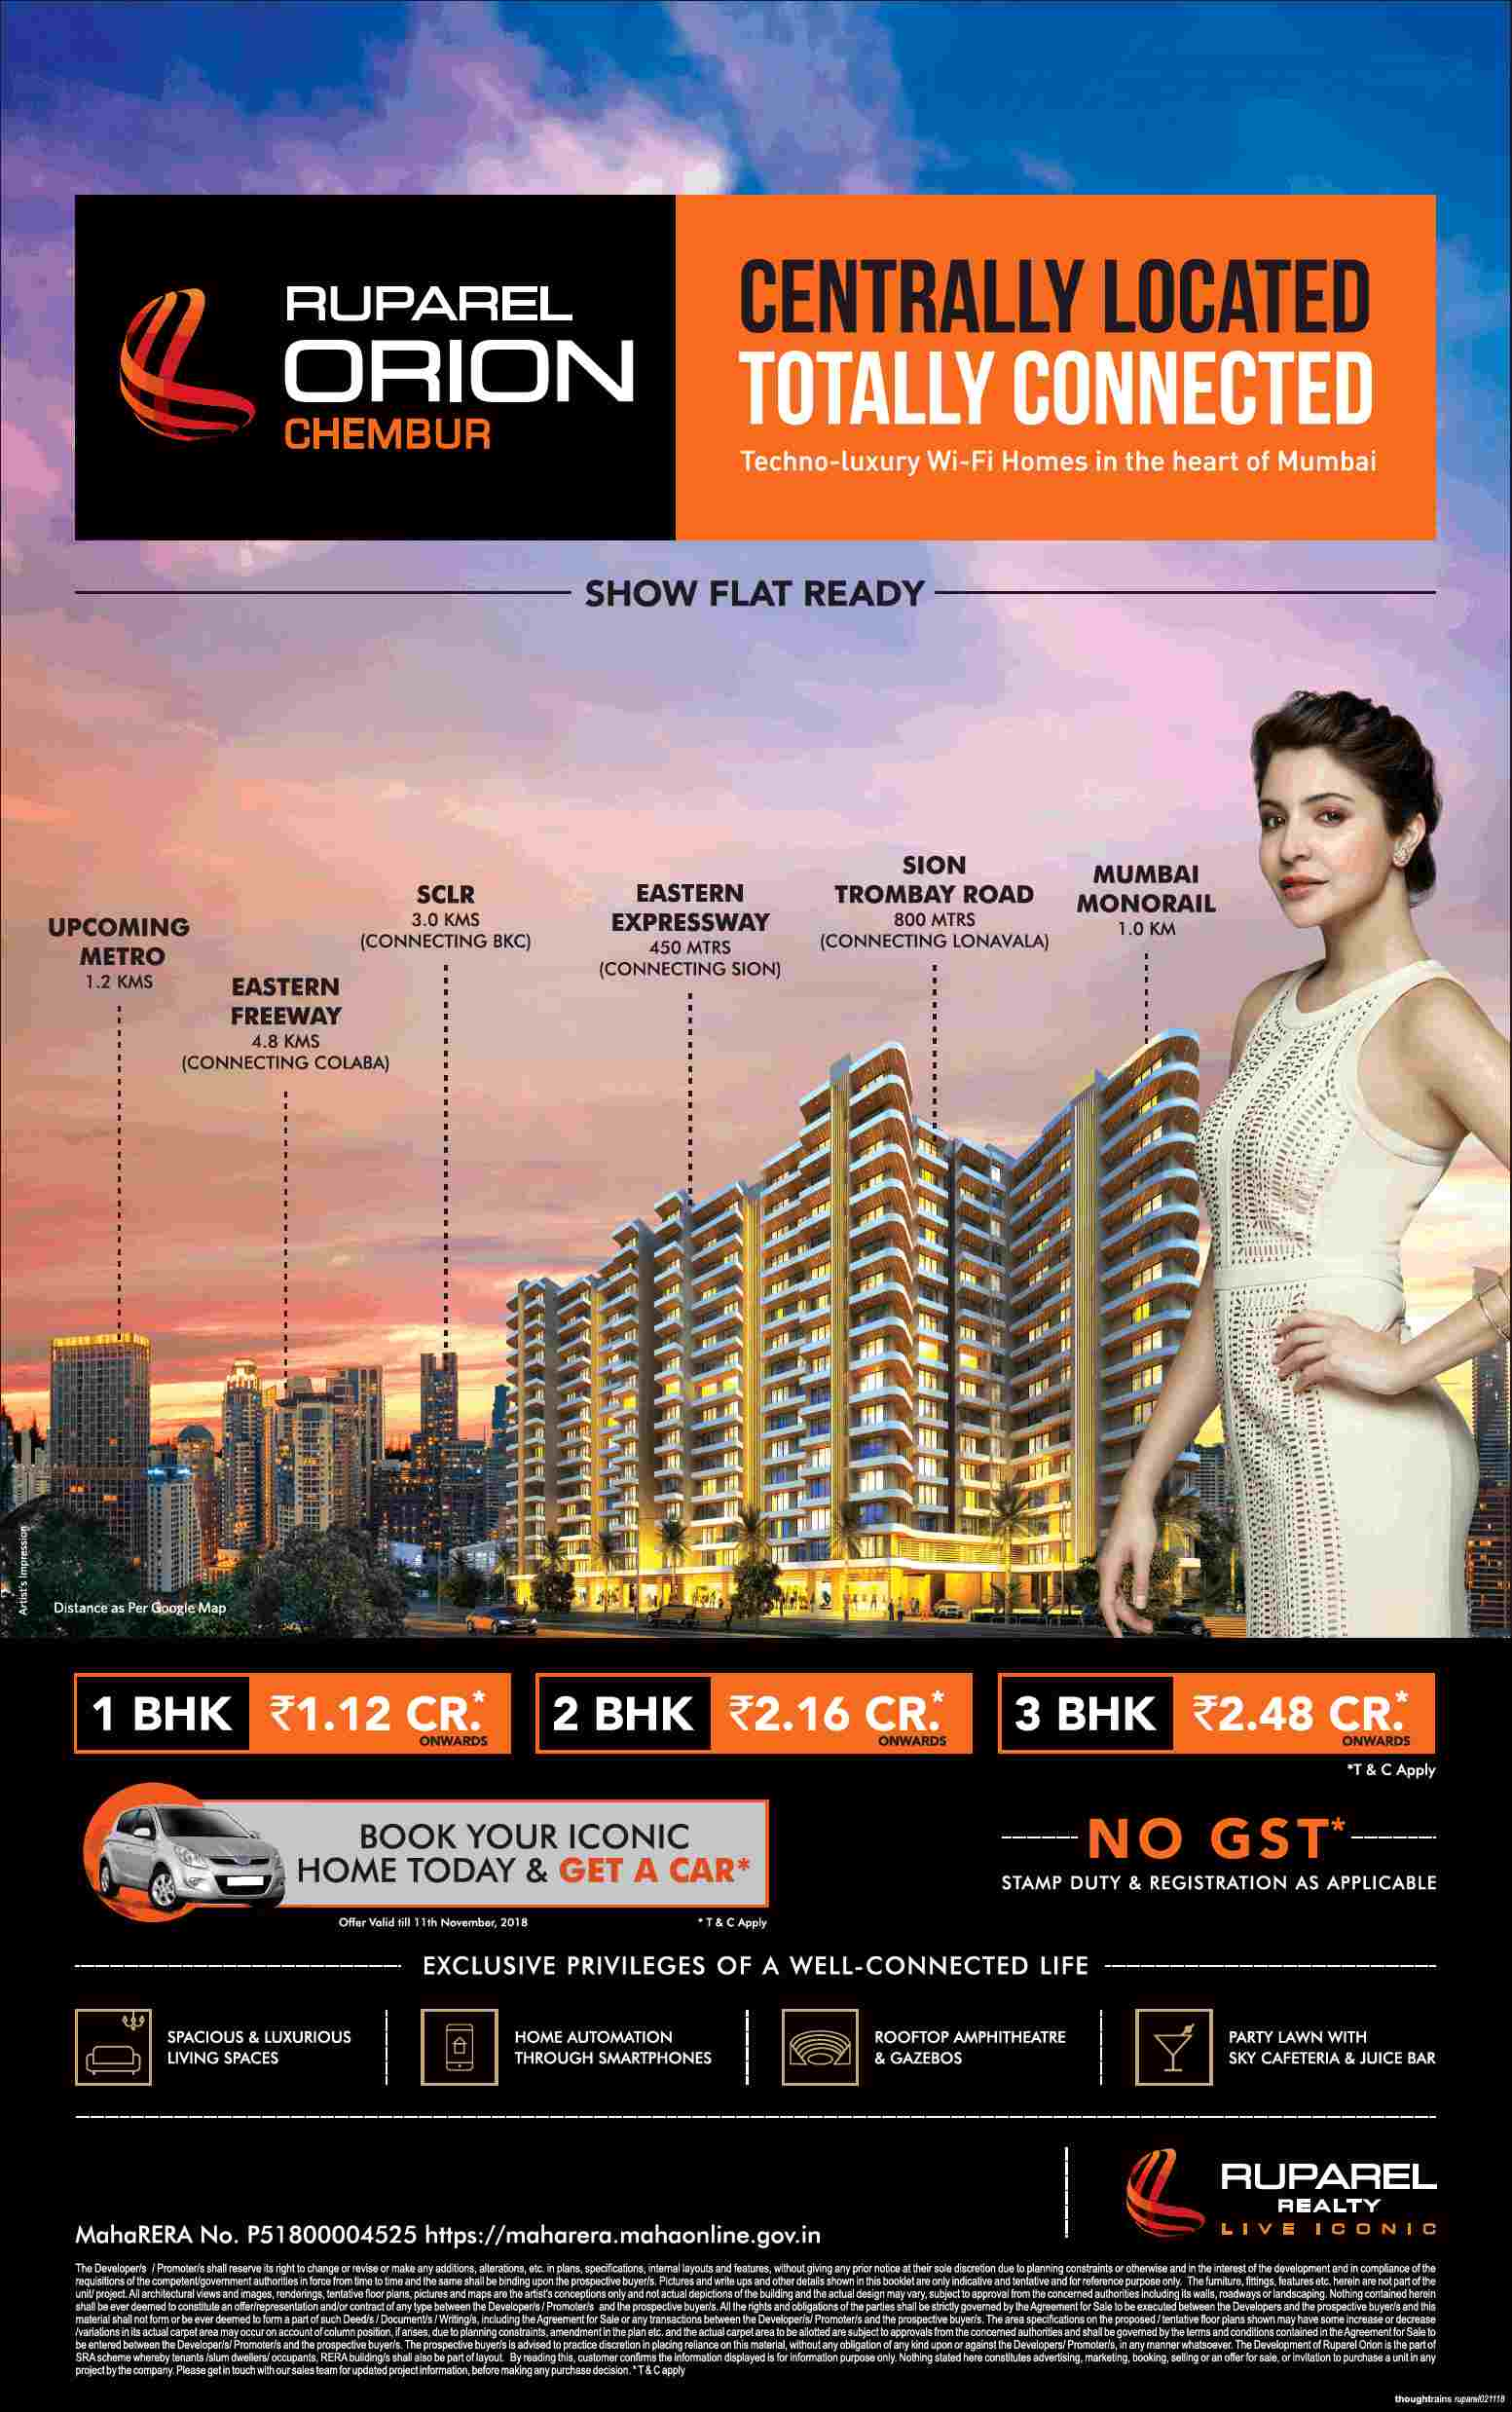 Get a car on booking an iconic home at Ruparel Orion in Chembur Mumbai